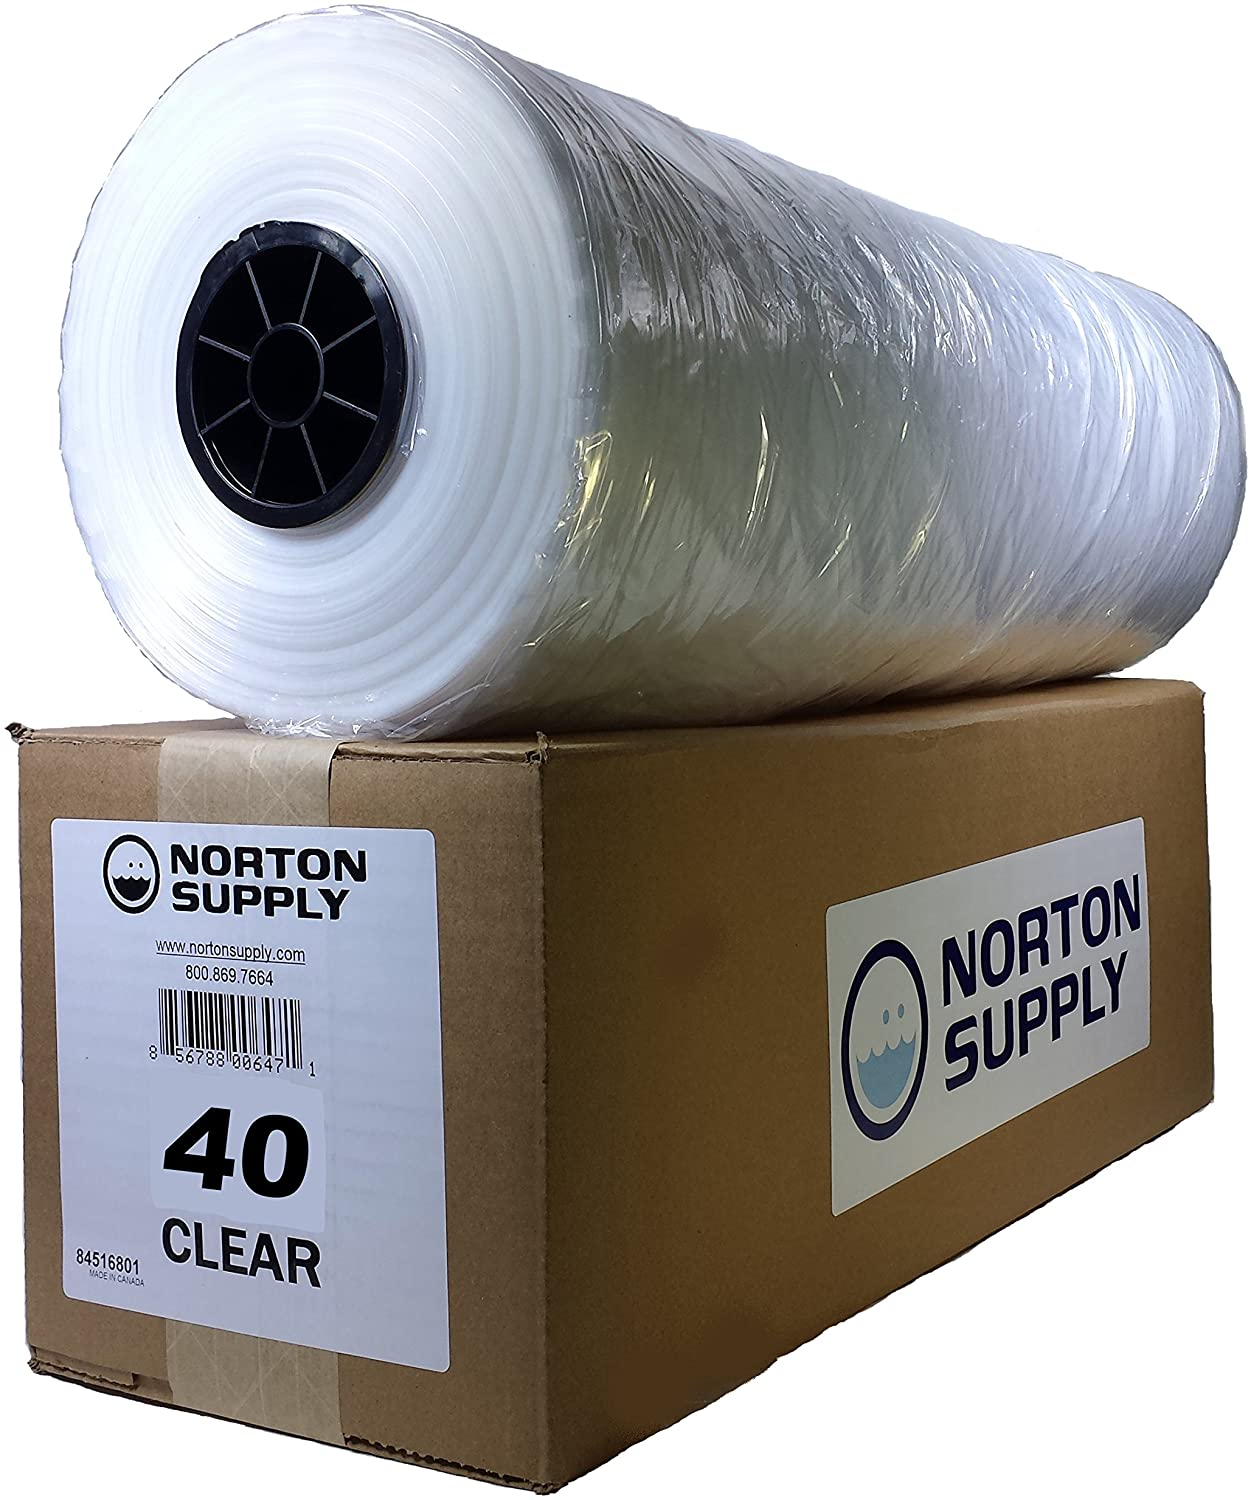 Norton Supply Dry Cleaning Poly Bags - 40